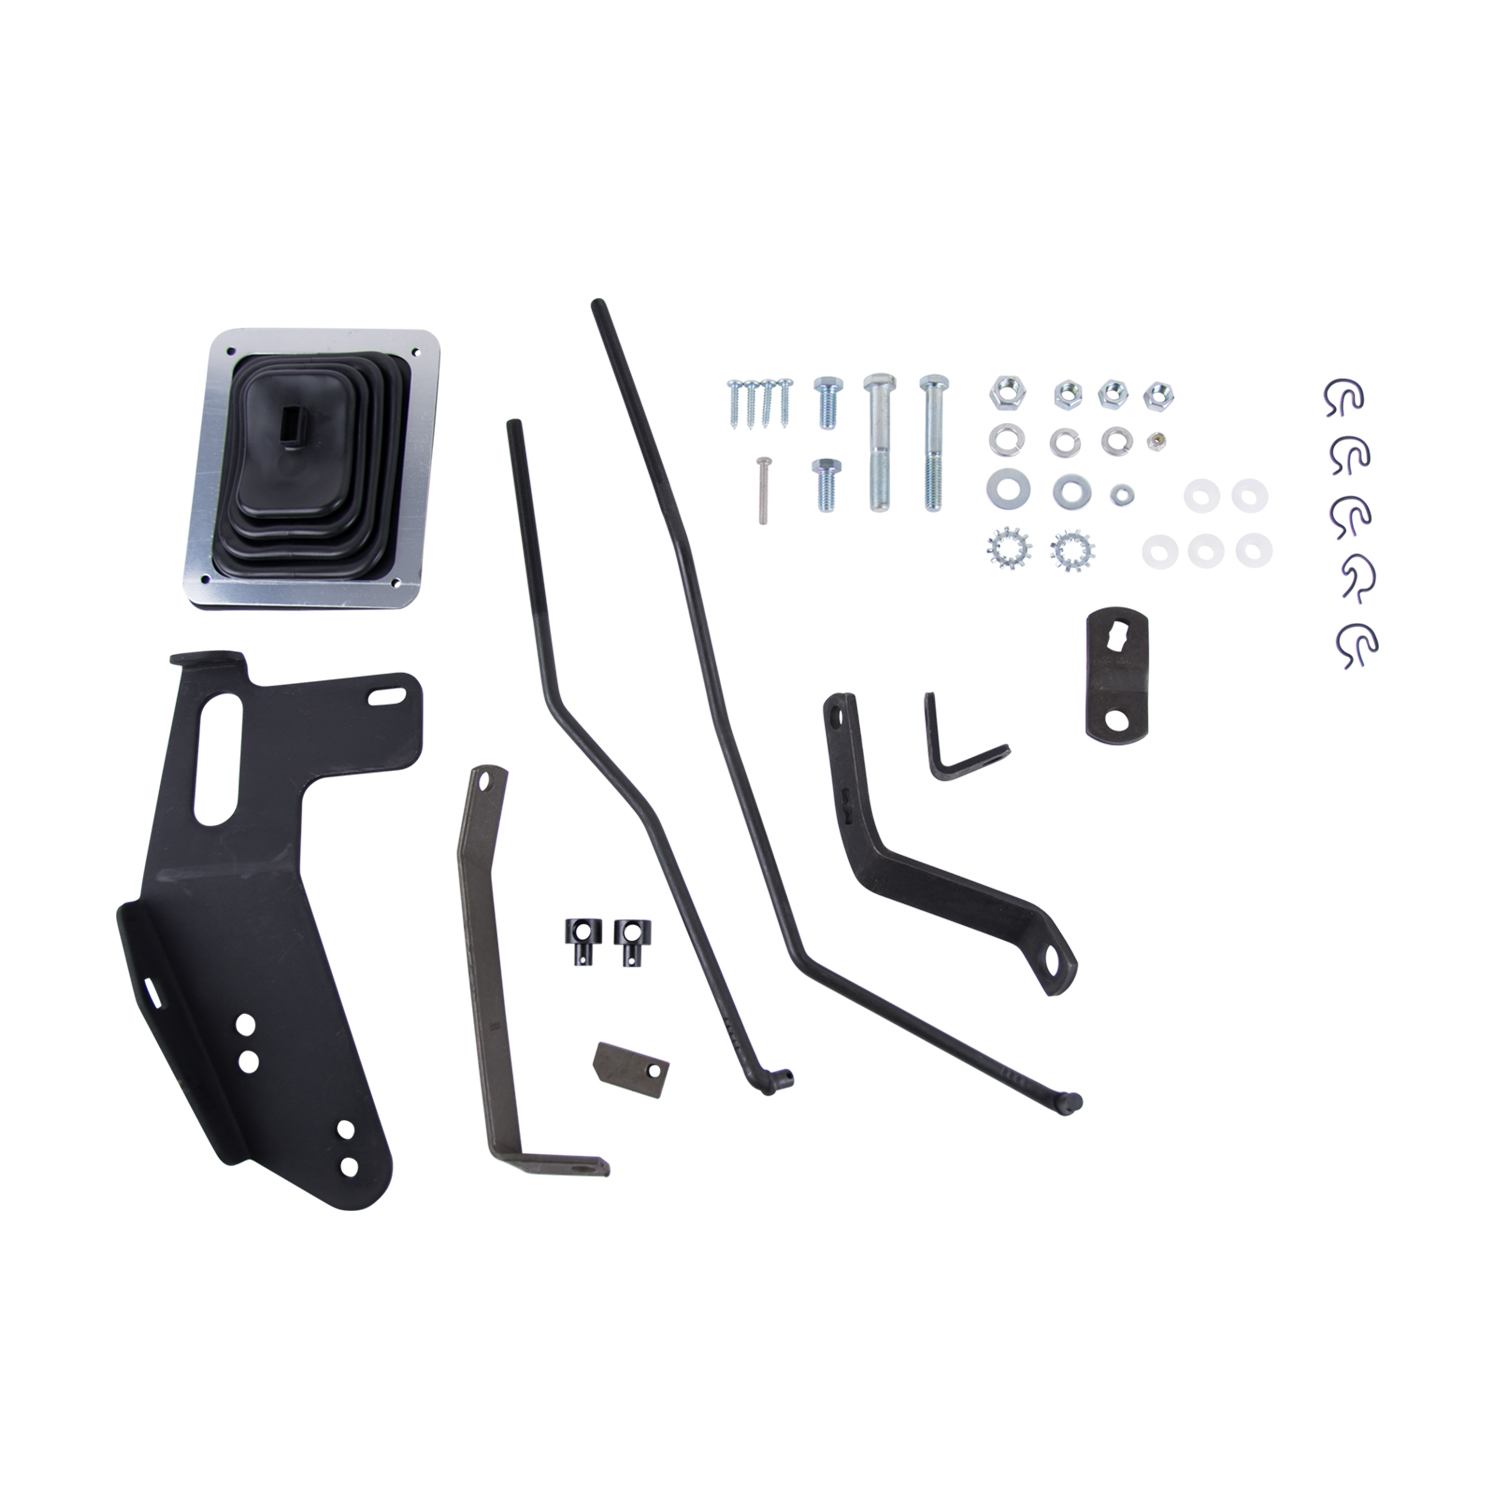 3670006 Hurst Manual Trans Shifter Installation Kit For Use With 343